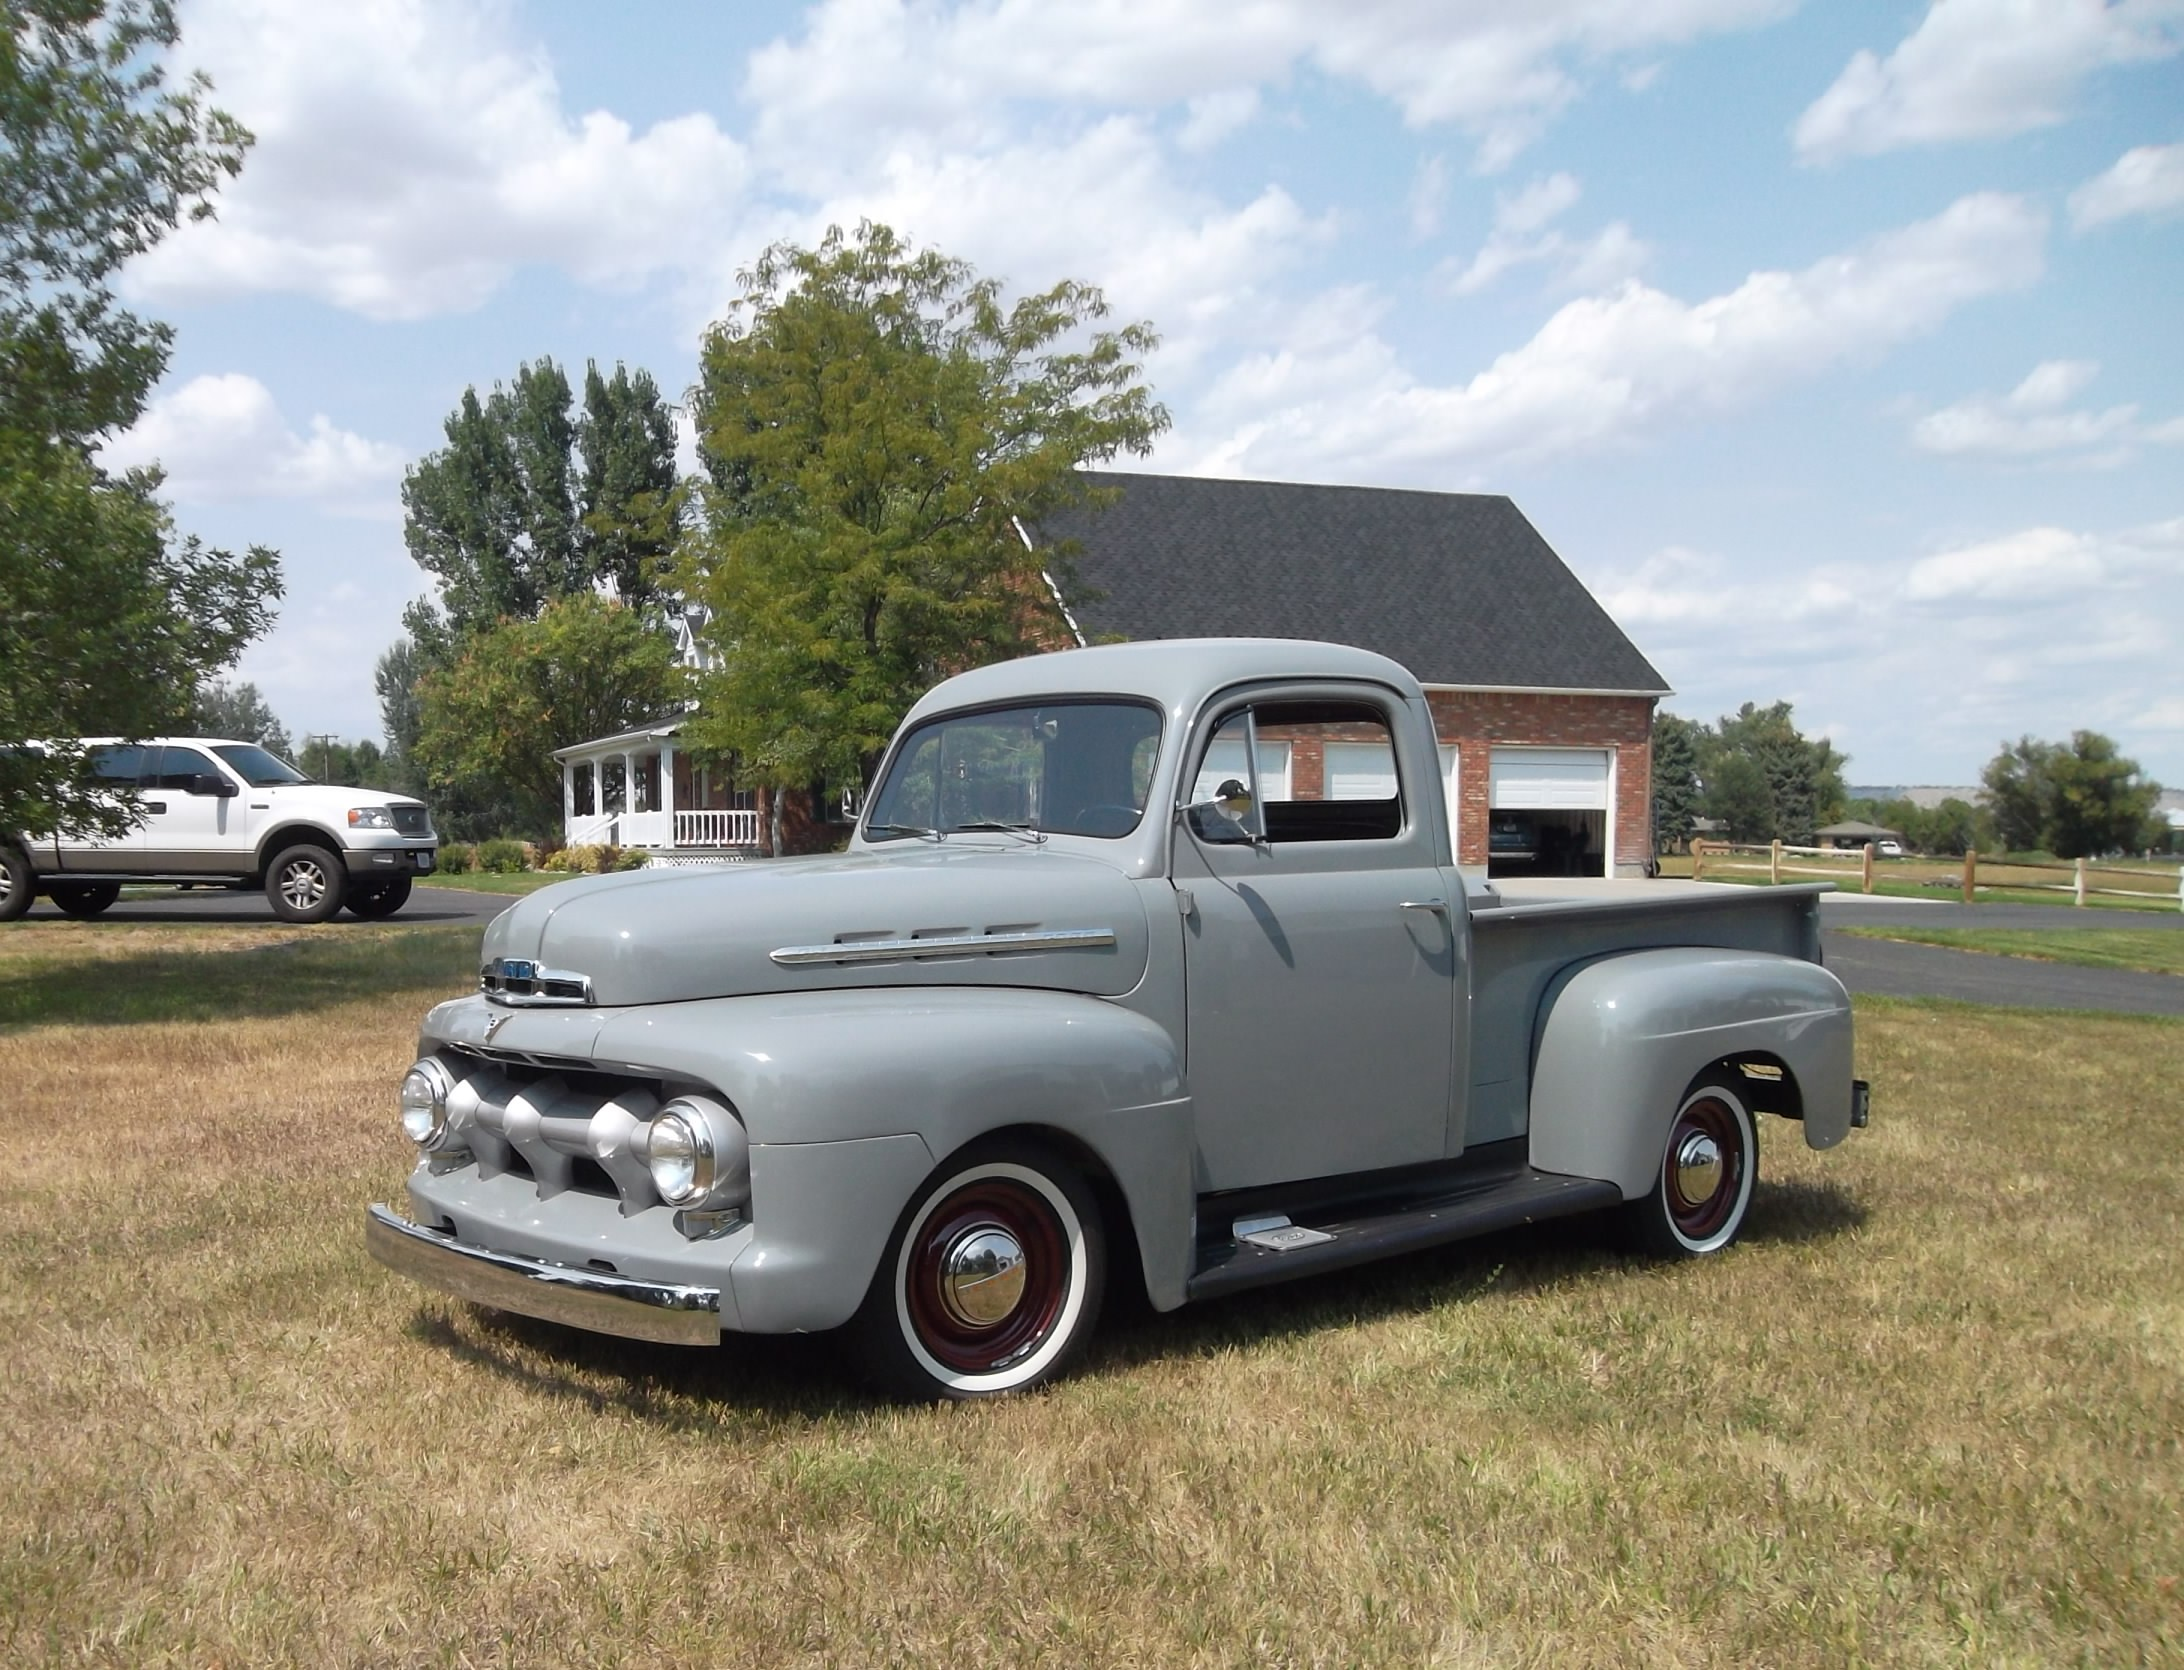 Montana Classic Car Auction – Classic Car Auction Group